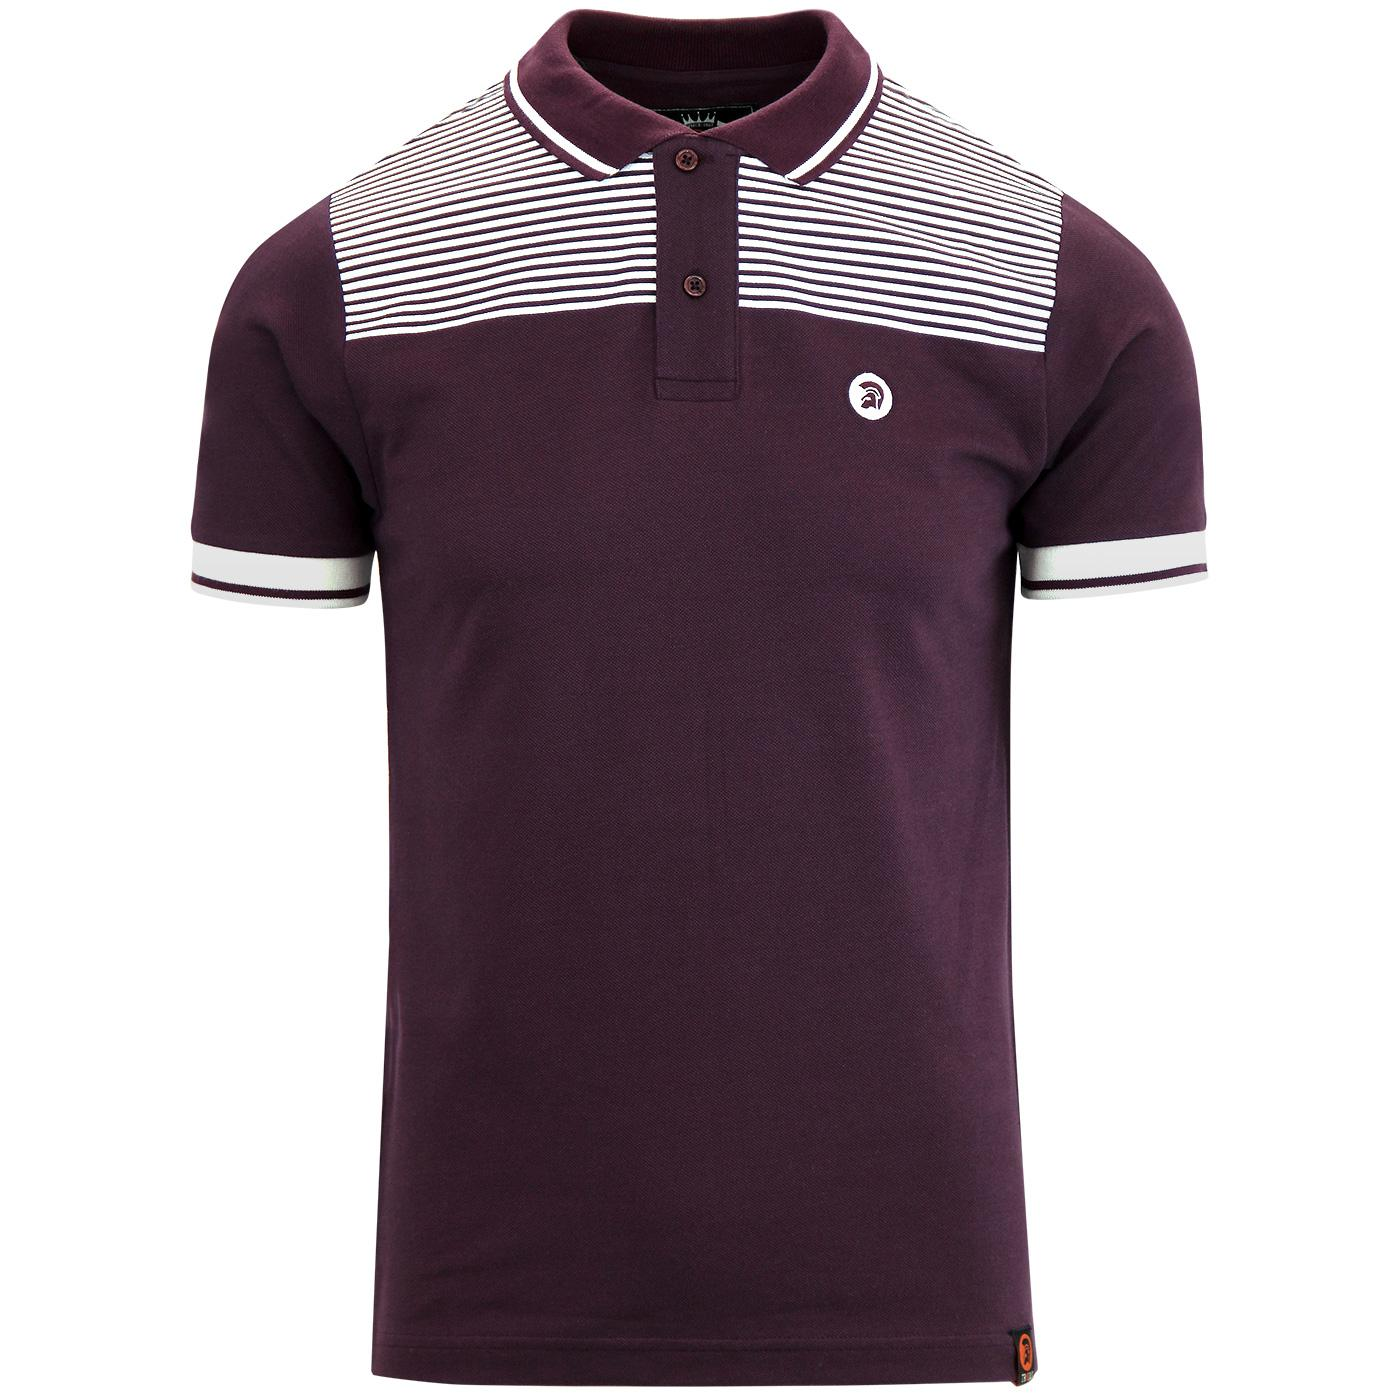 TROJAN RECORDS Men's Border Stripe Pique Polo PLUM